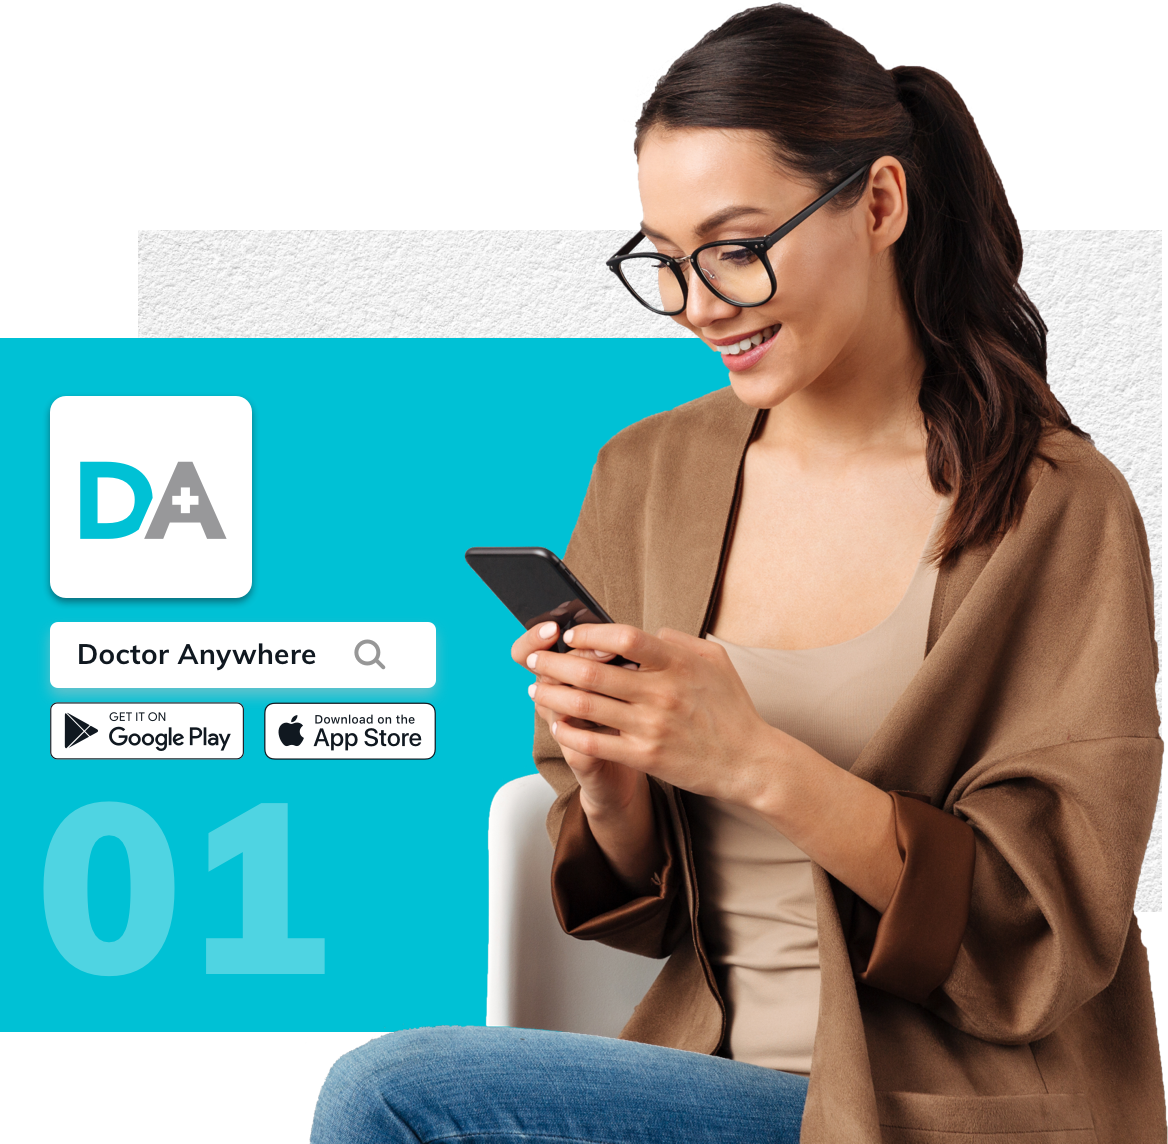 Download Doctor Anywhere app